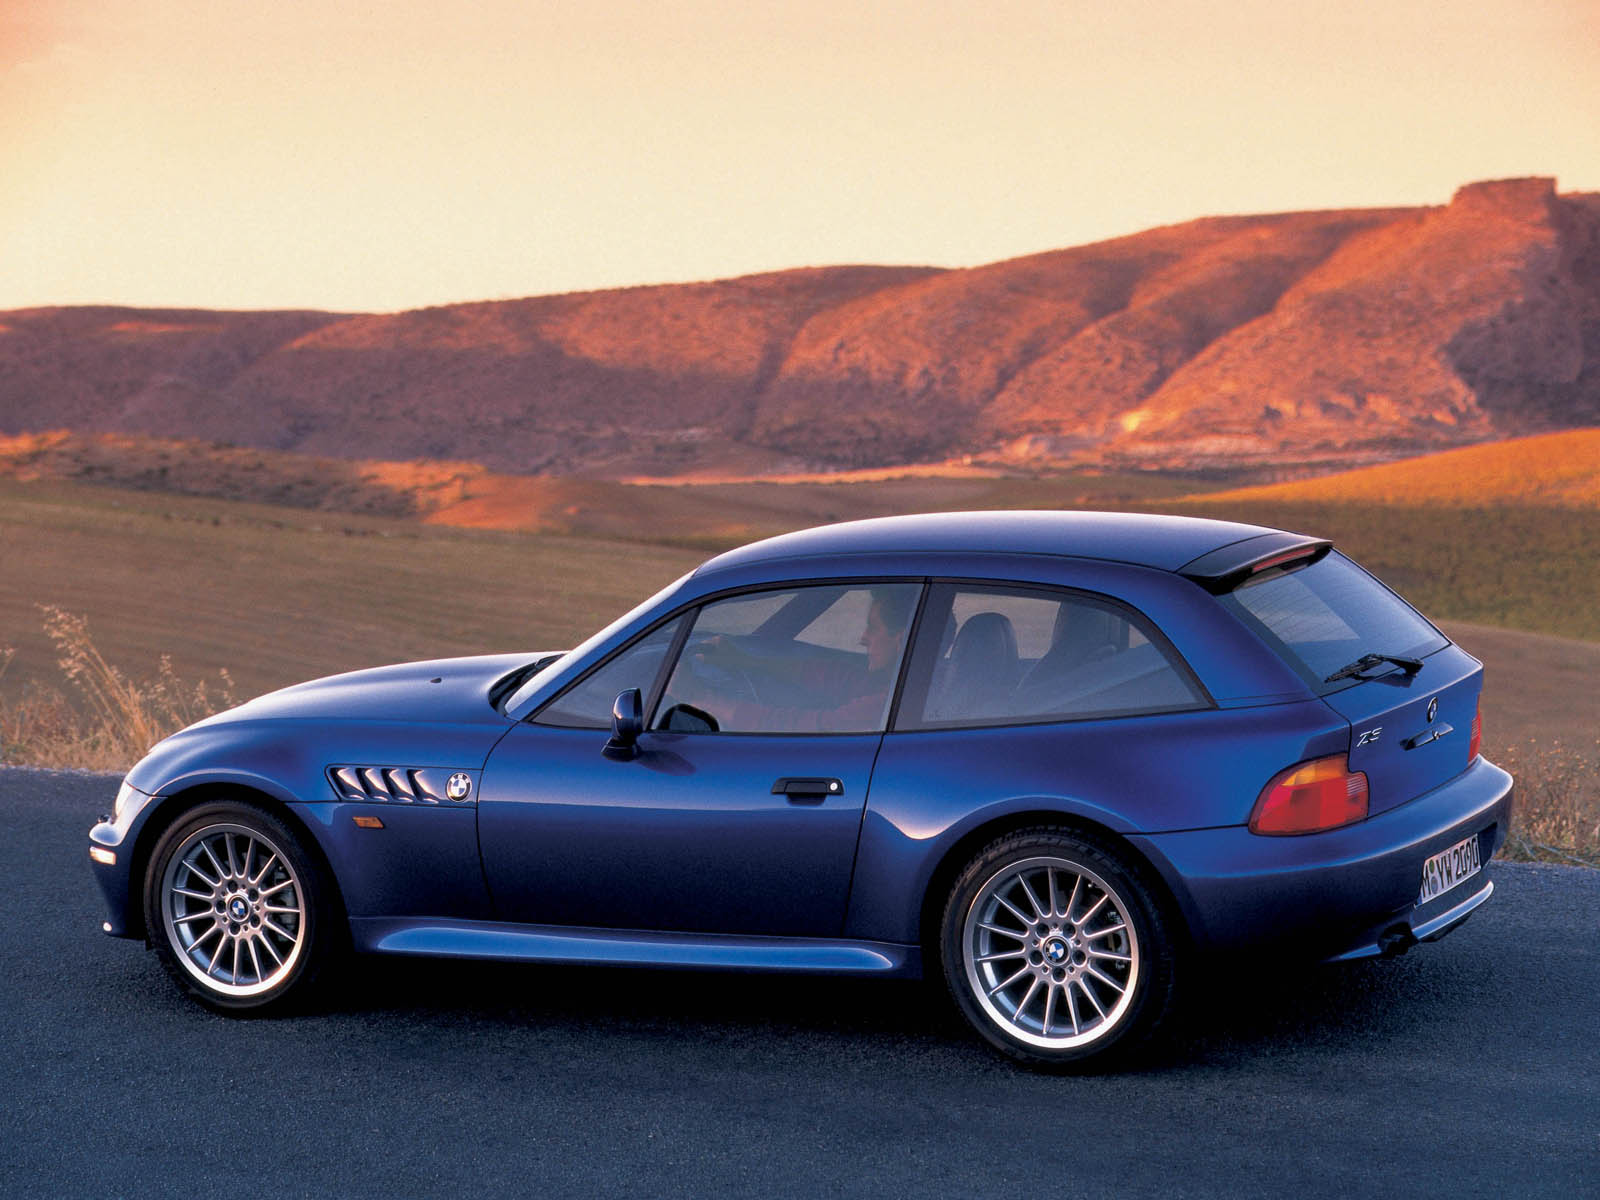 3dtuning Of Bmw Z3 Coupe Coupe 1999 3dtuning Com Unique On Line Car Configurator For More Than